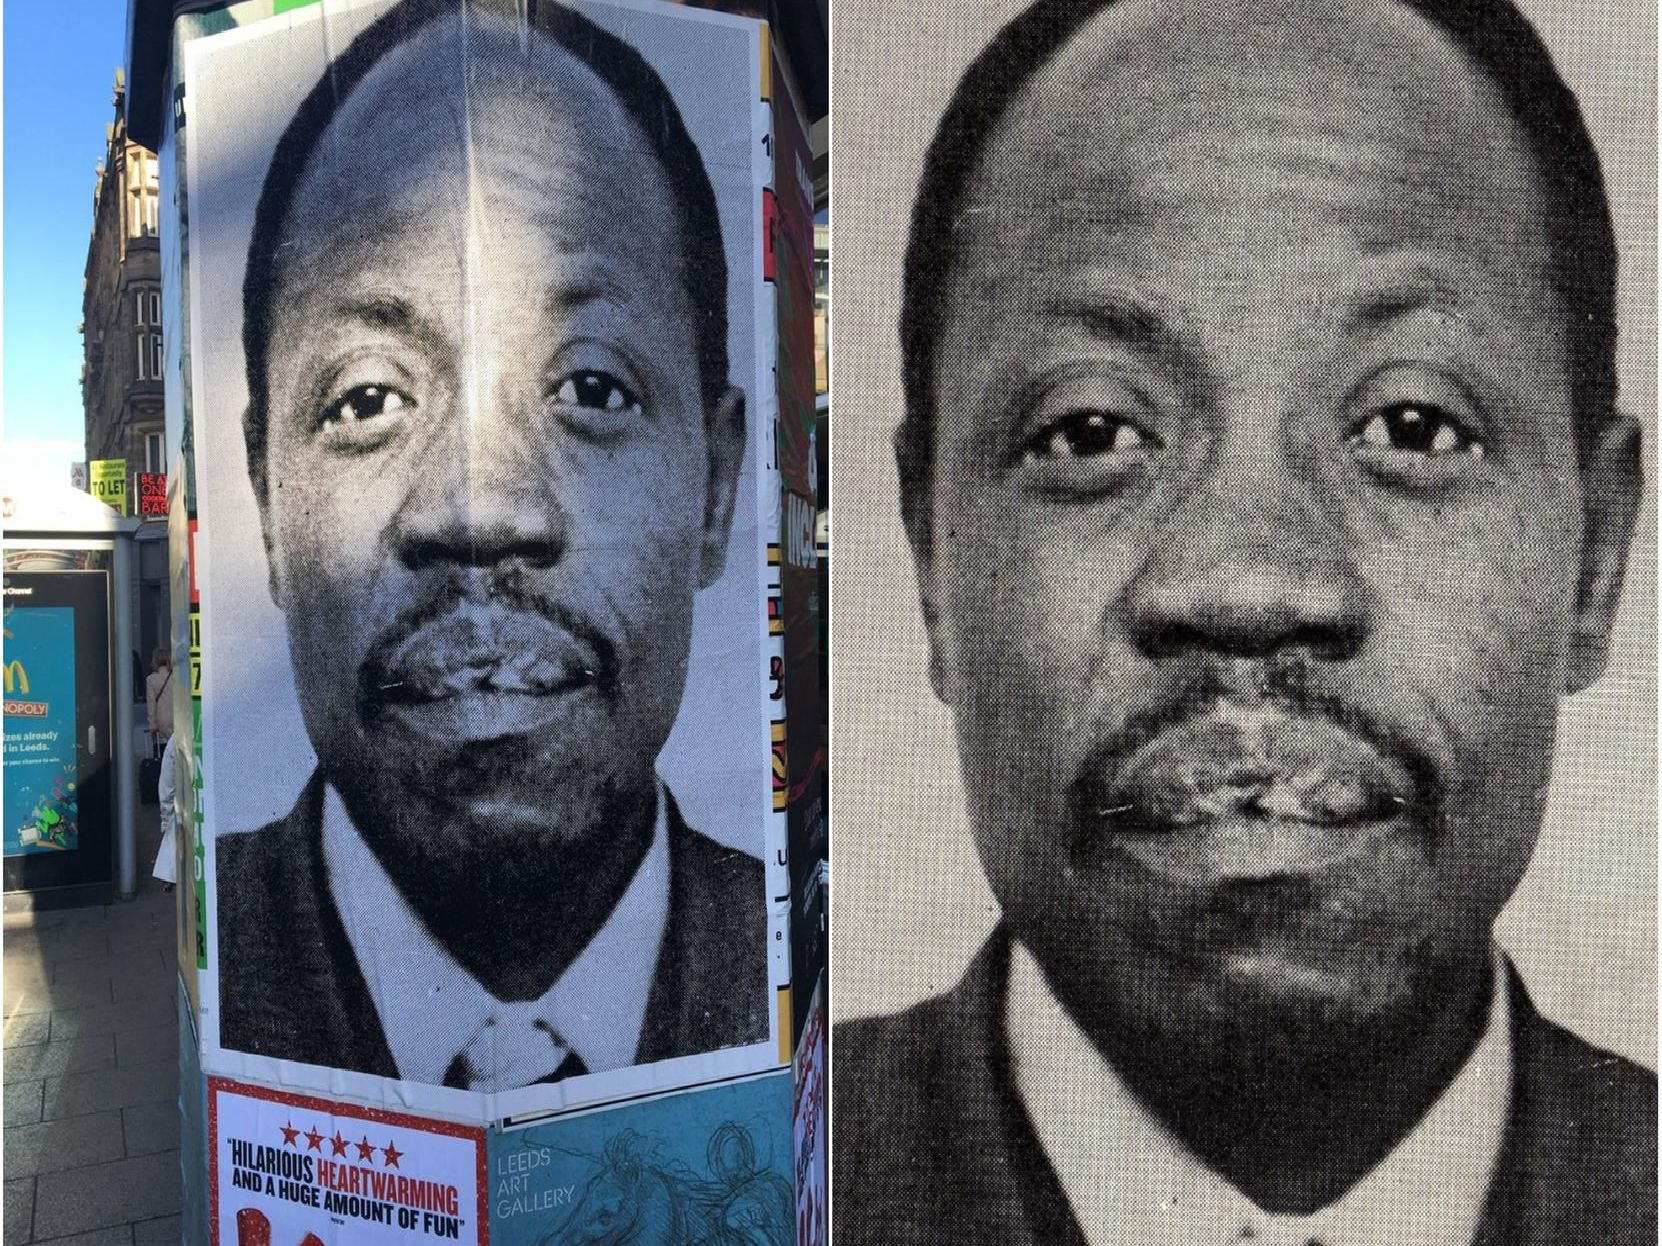 A series of events are being held throughout the city to commemorate the life and death of David Oluwale.